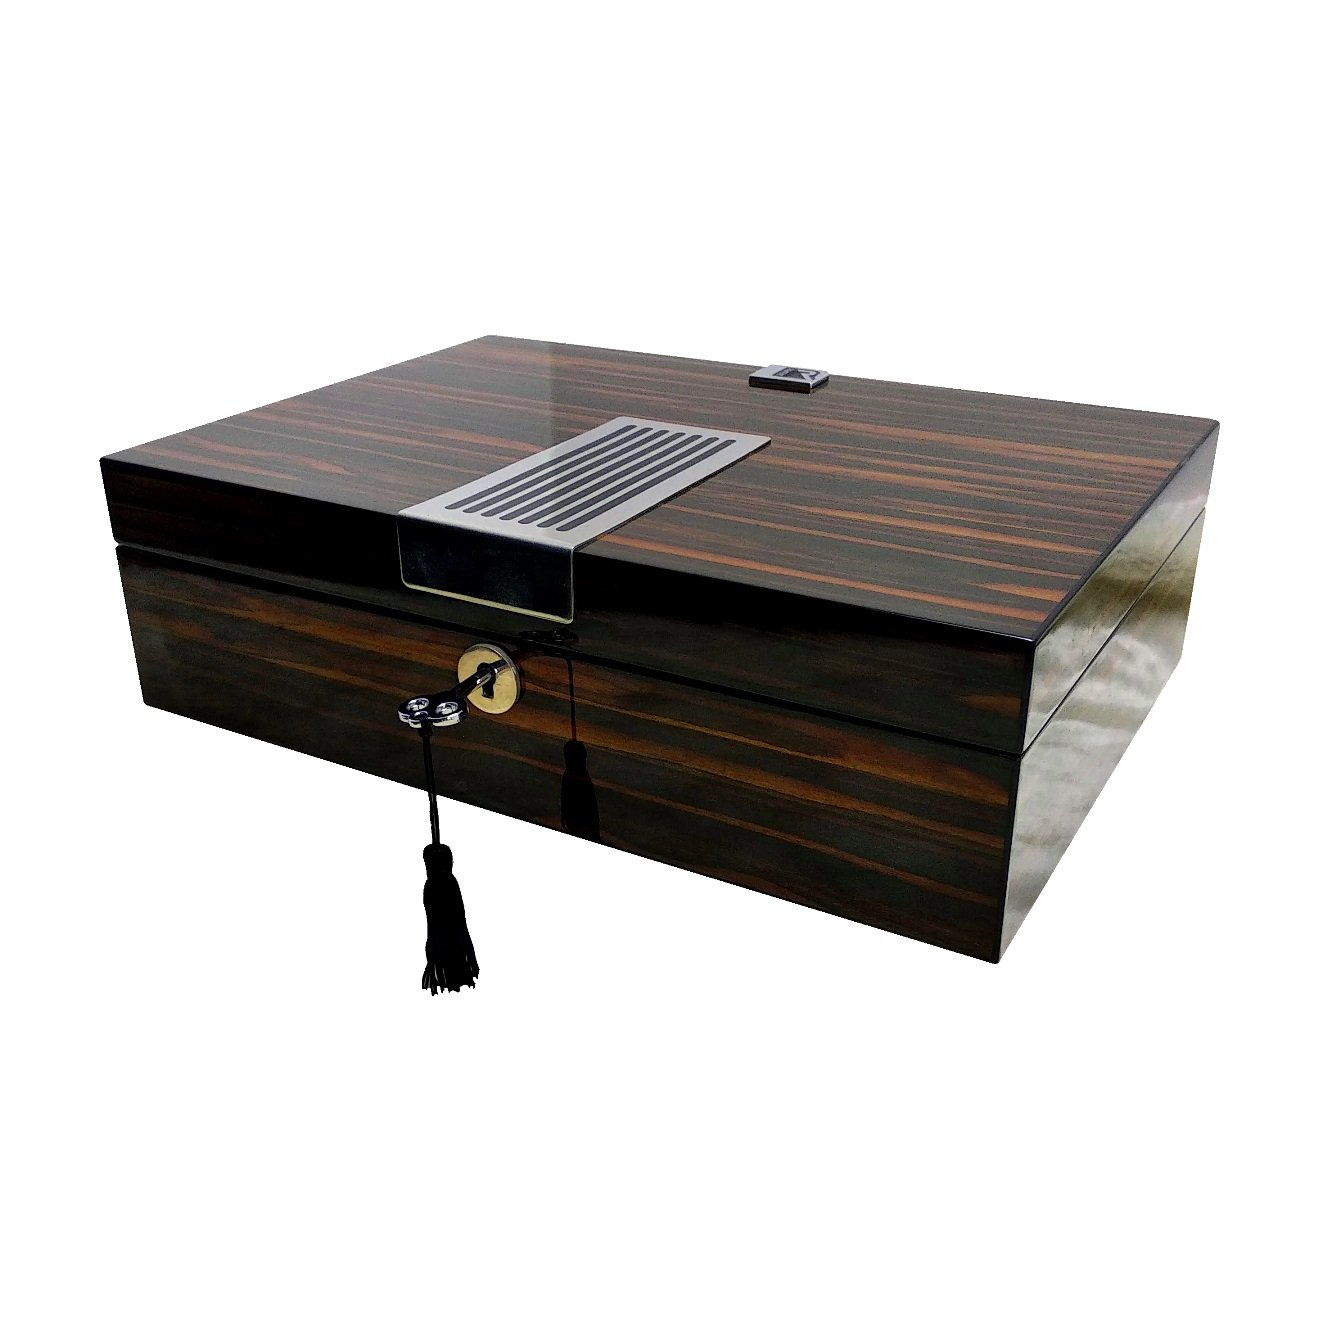 WATCH BOX FOR 8 WATCHES SRW80008WW-DB - The most perfect for you